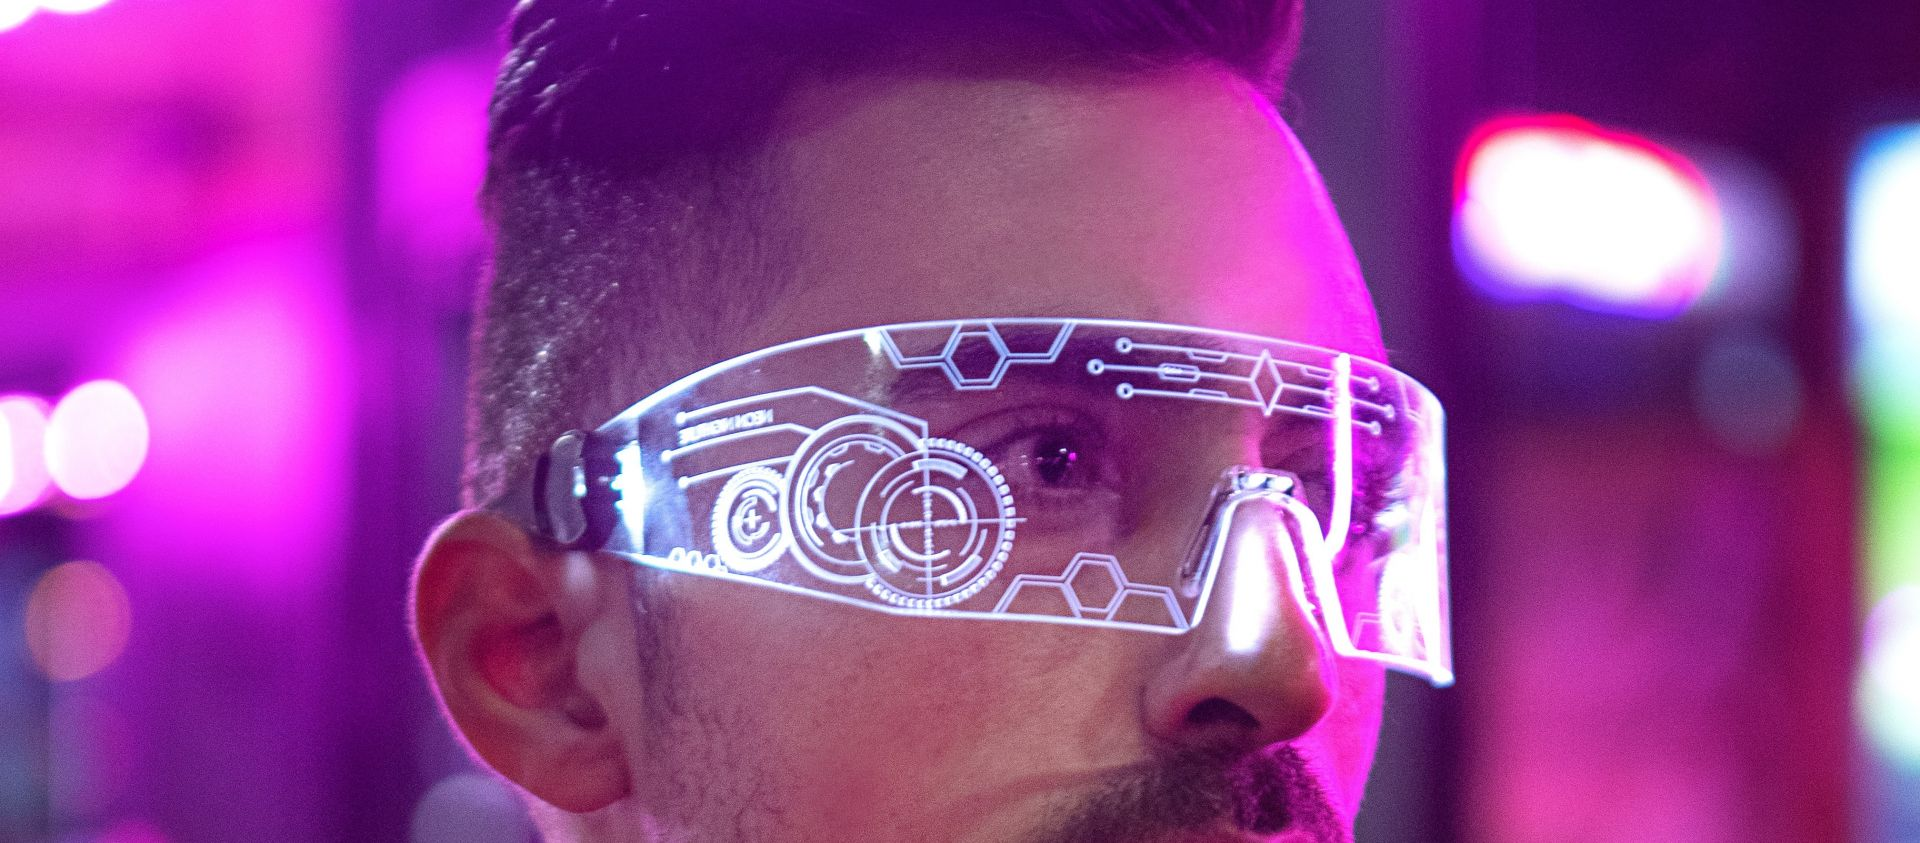 Man with advanced tech glasses